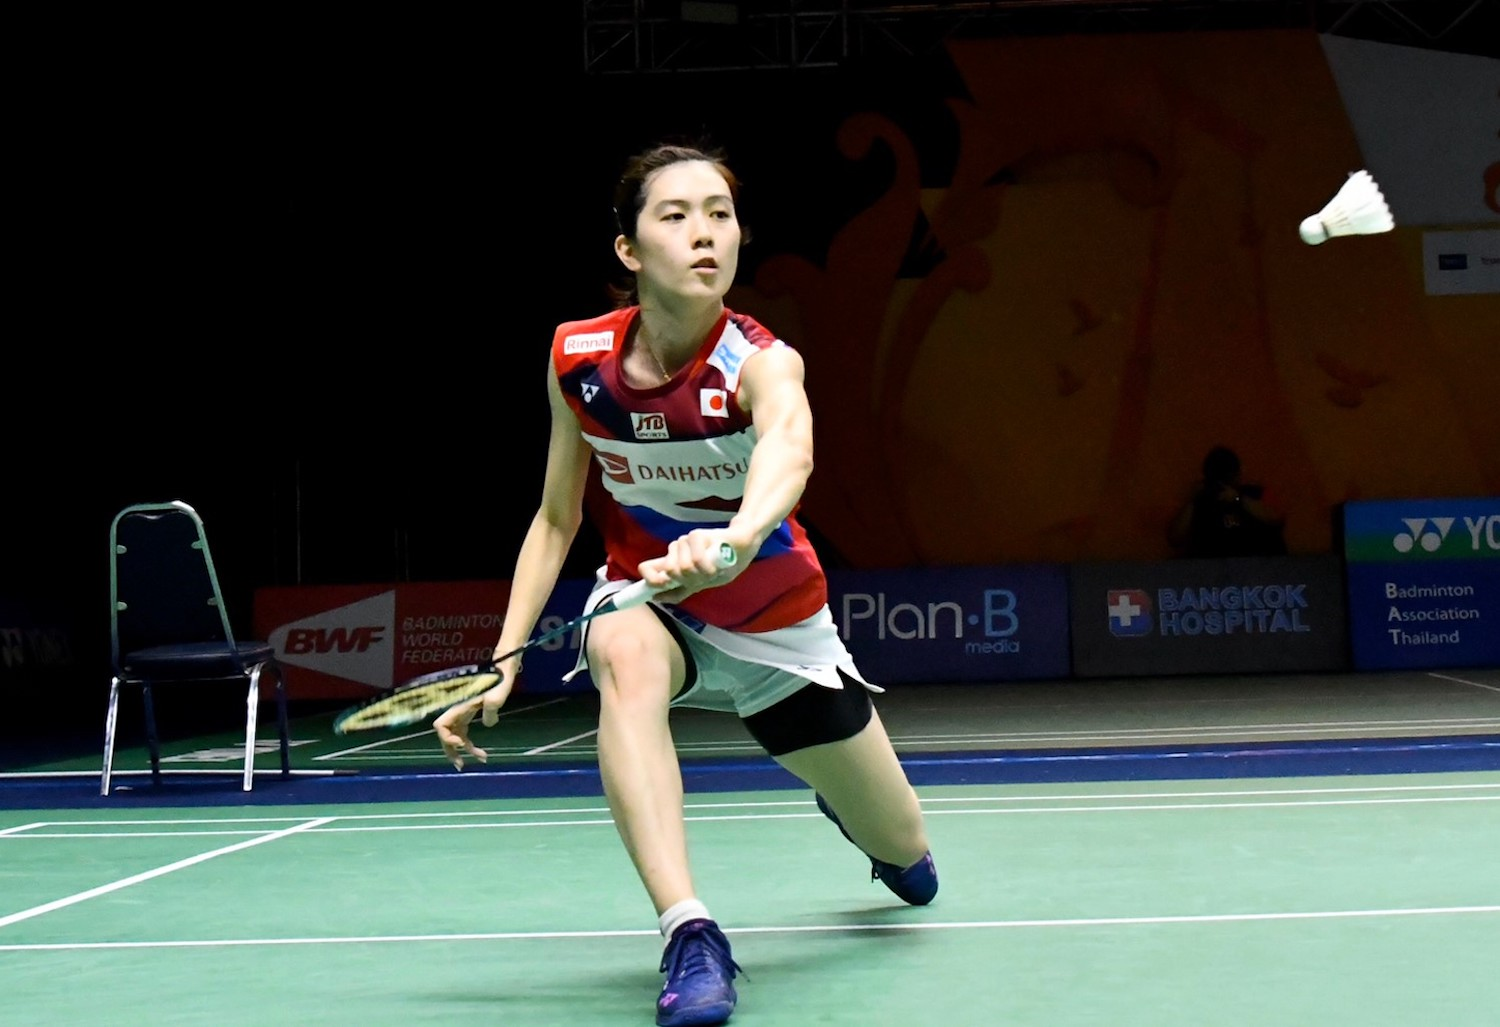 Aya Ohori in action against Ratchanok Intanon at Indoor Stadium Huamark on Friday.